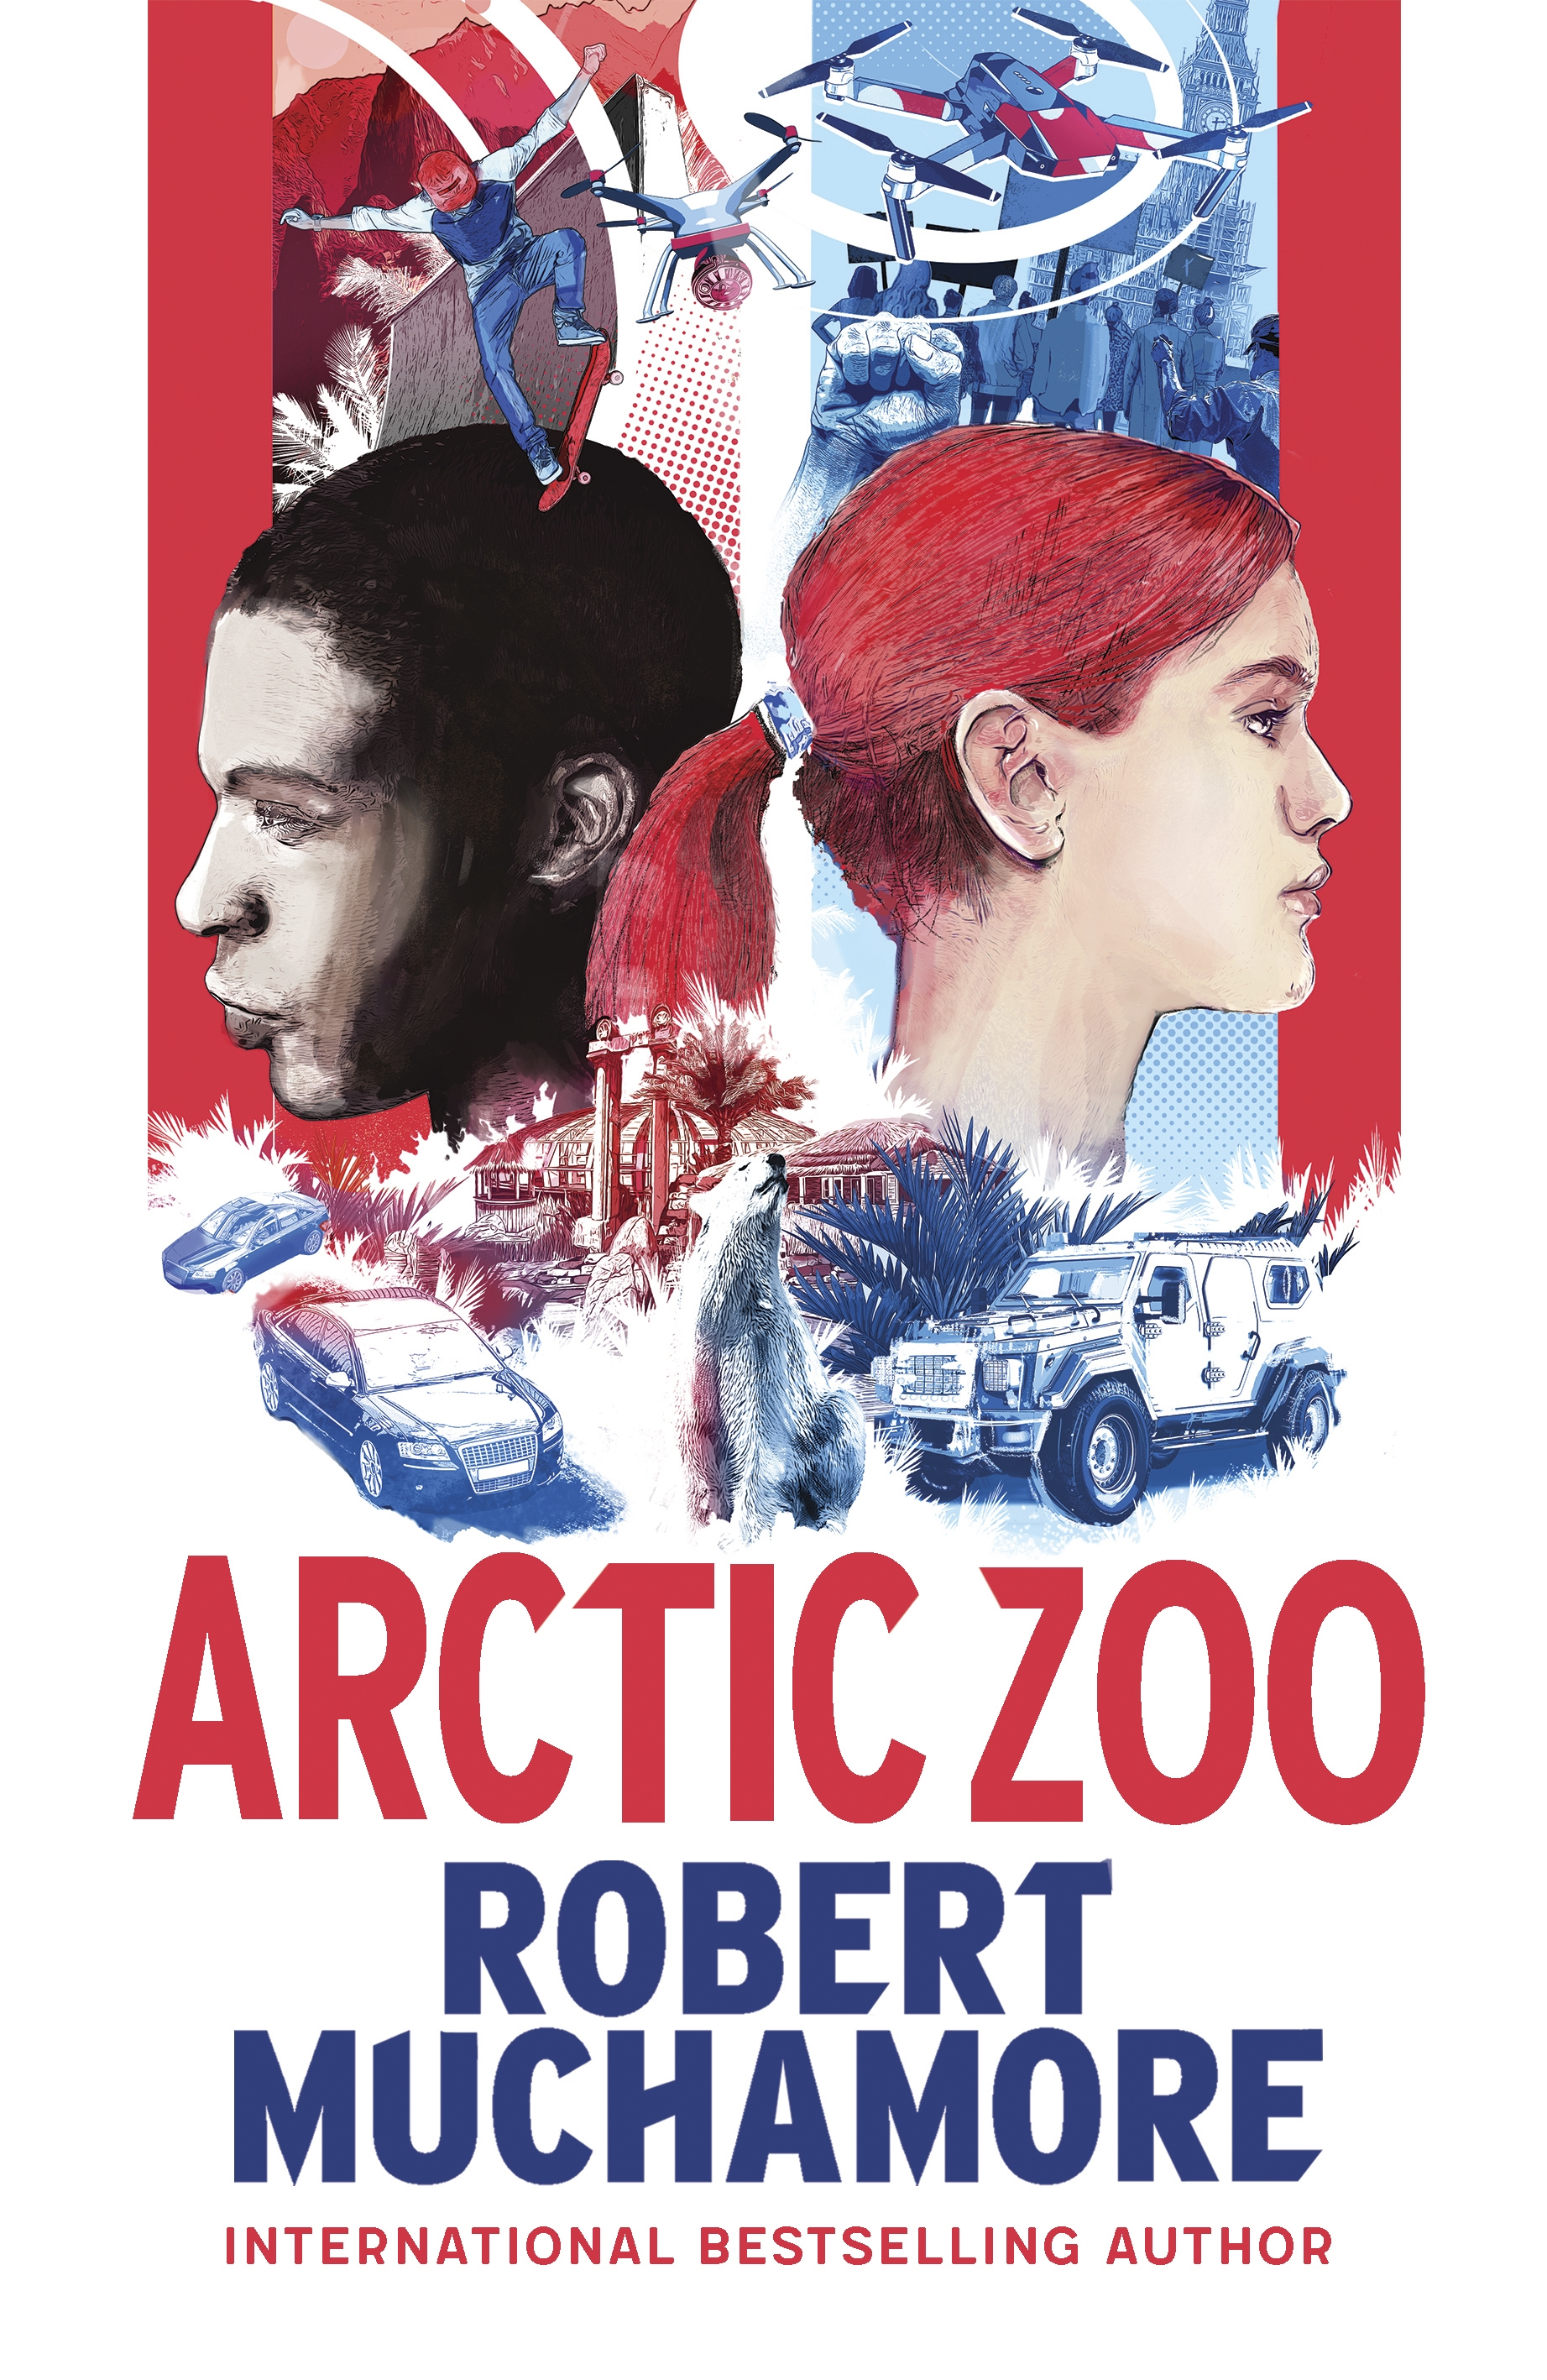 Arctic Zoo by Robert Muchamore